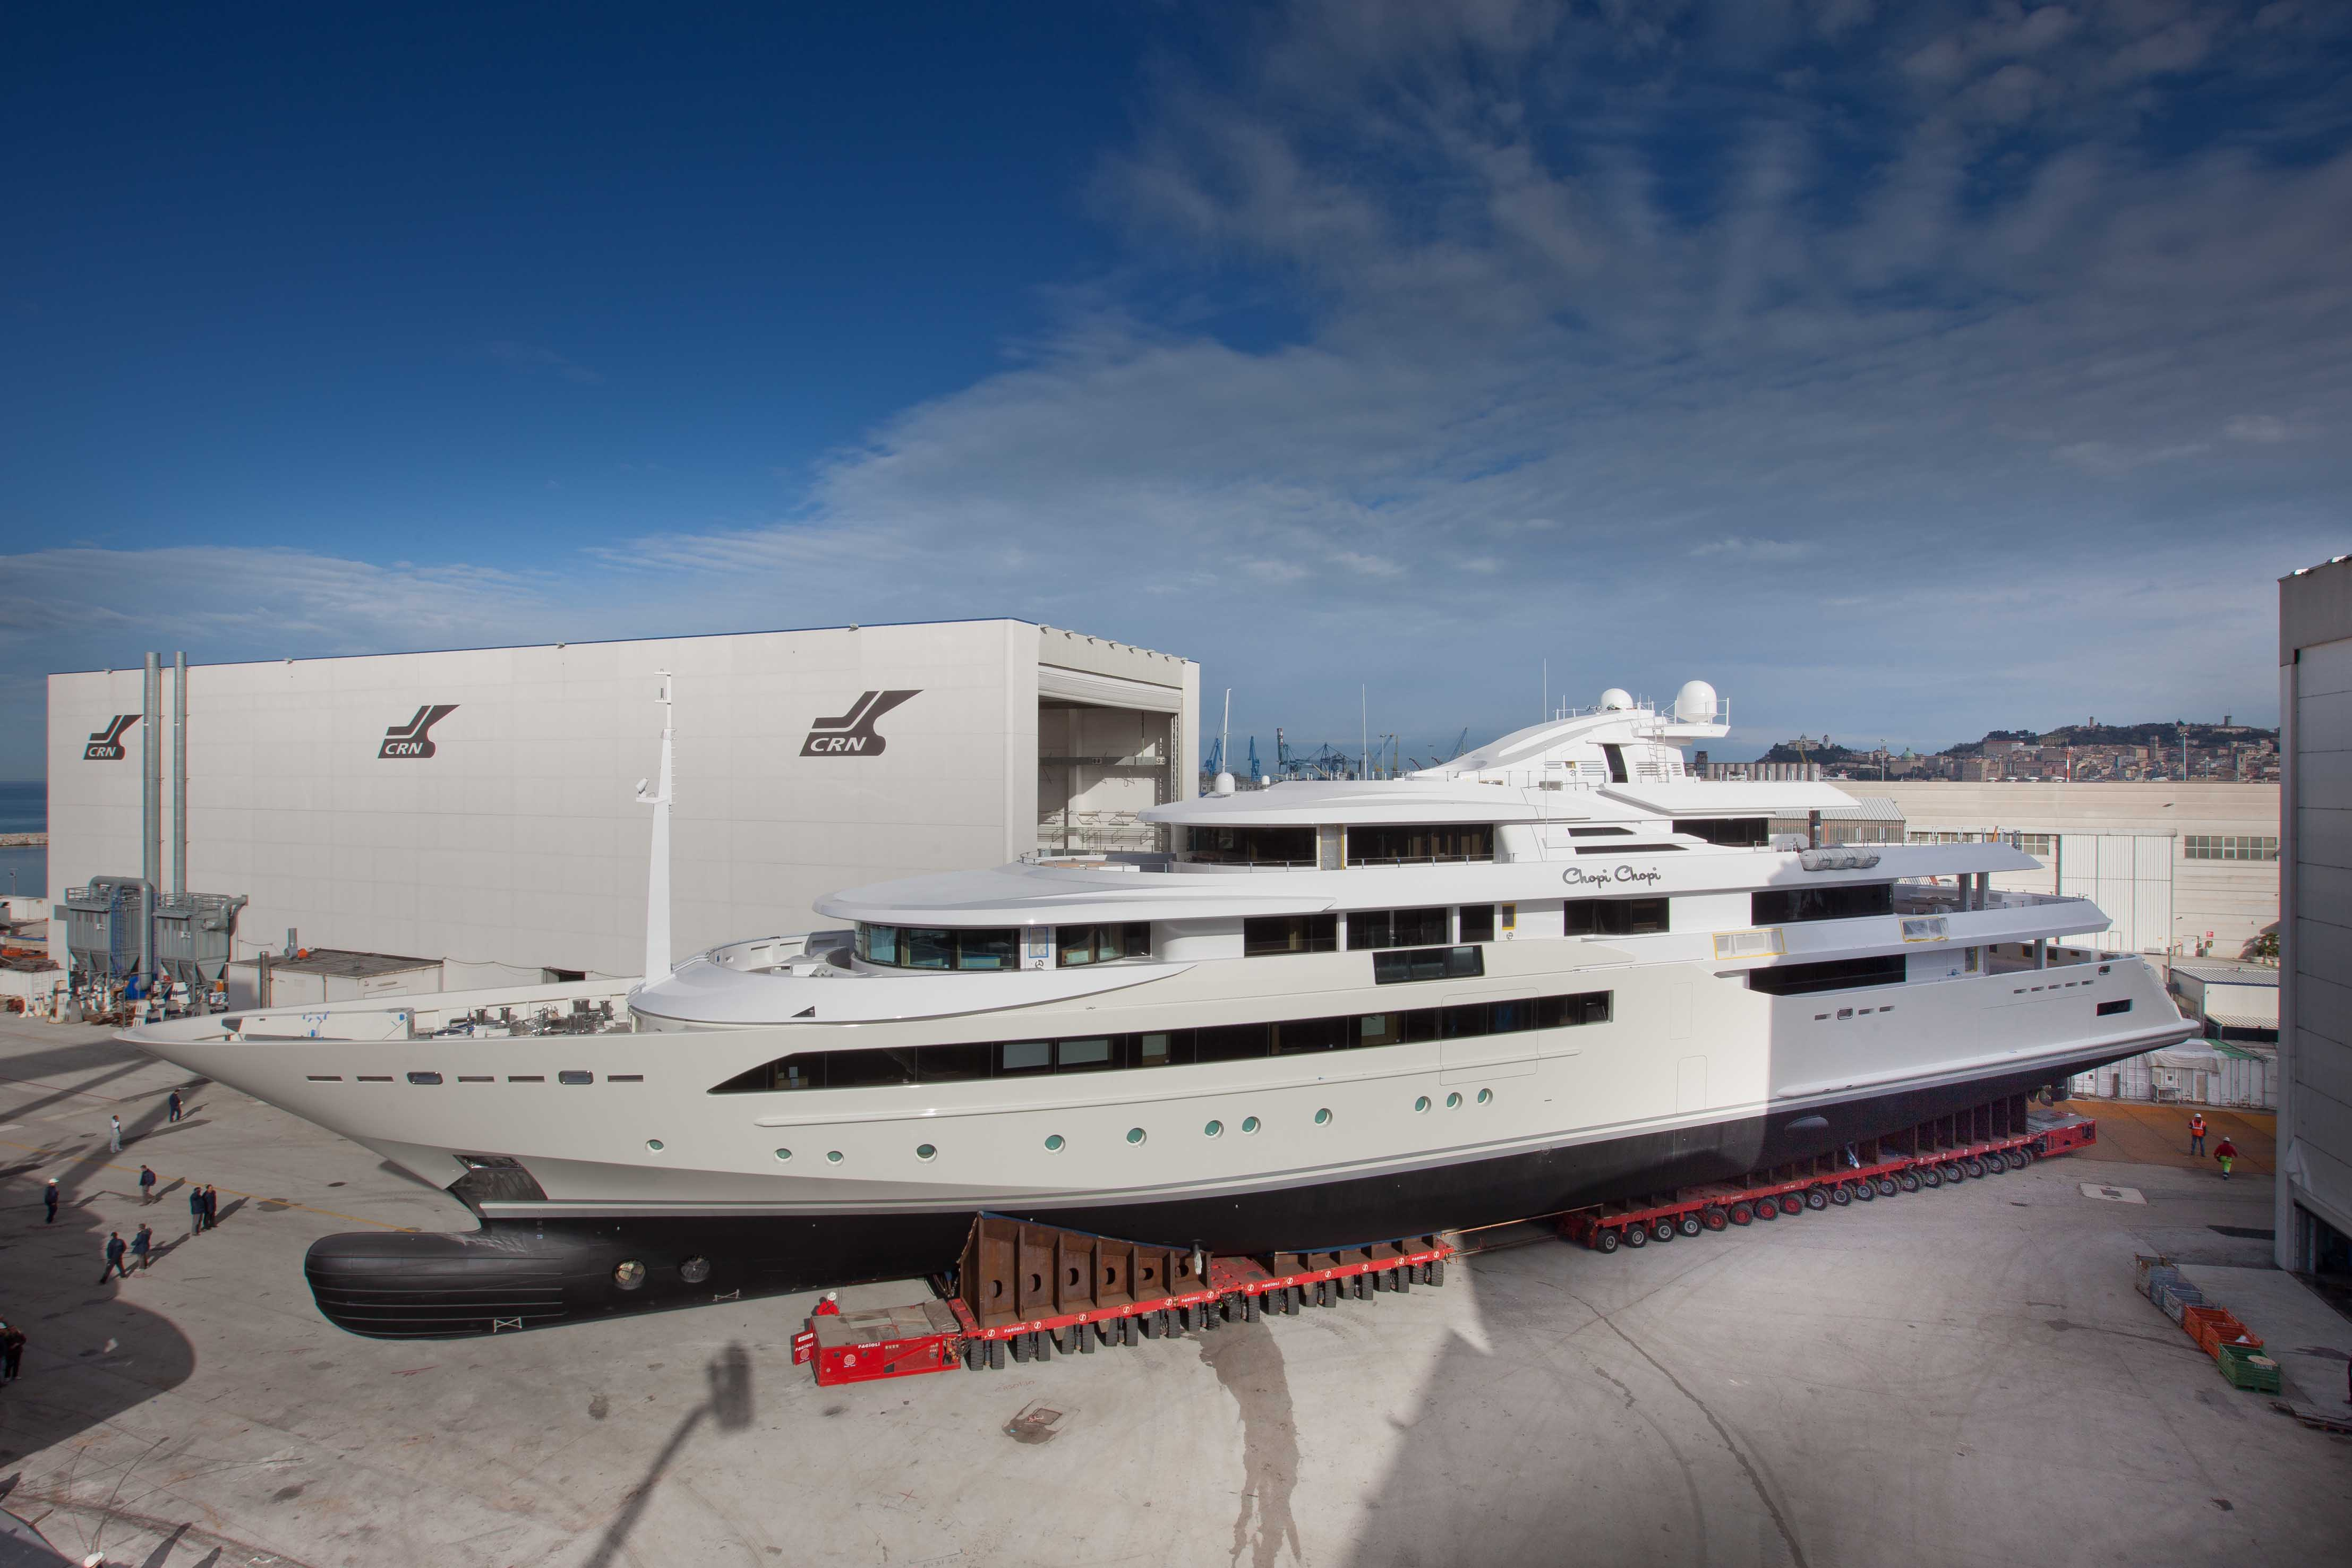 80m megayacht CHOPI CHOPI - the biggest project ever developed by Zuccon International Project